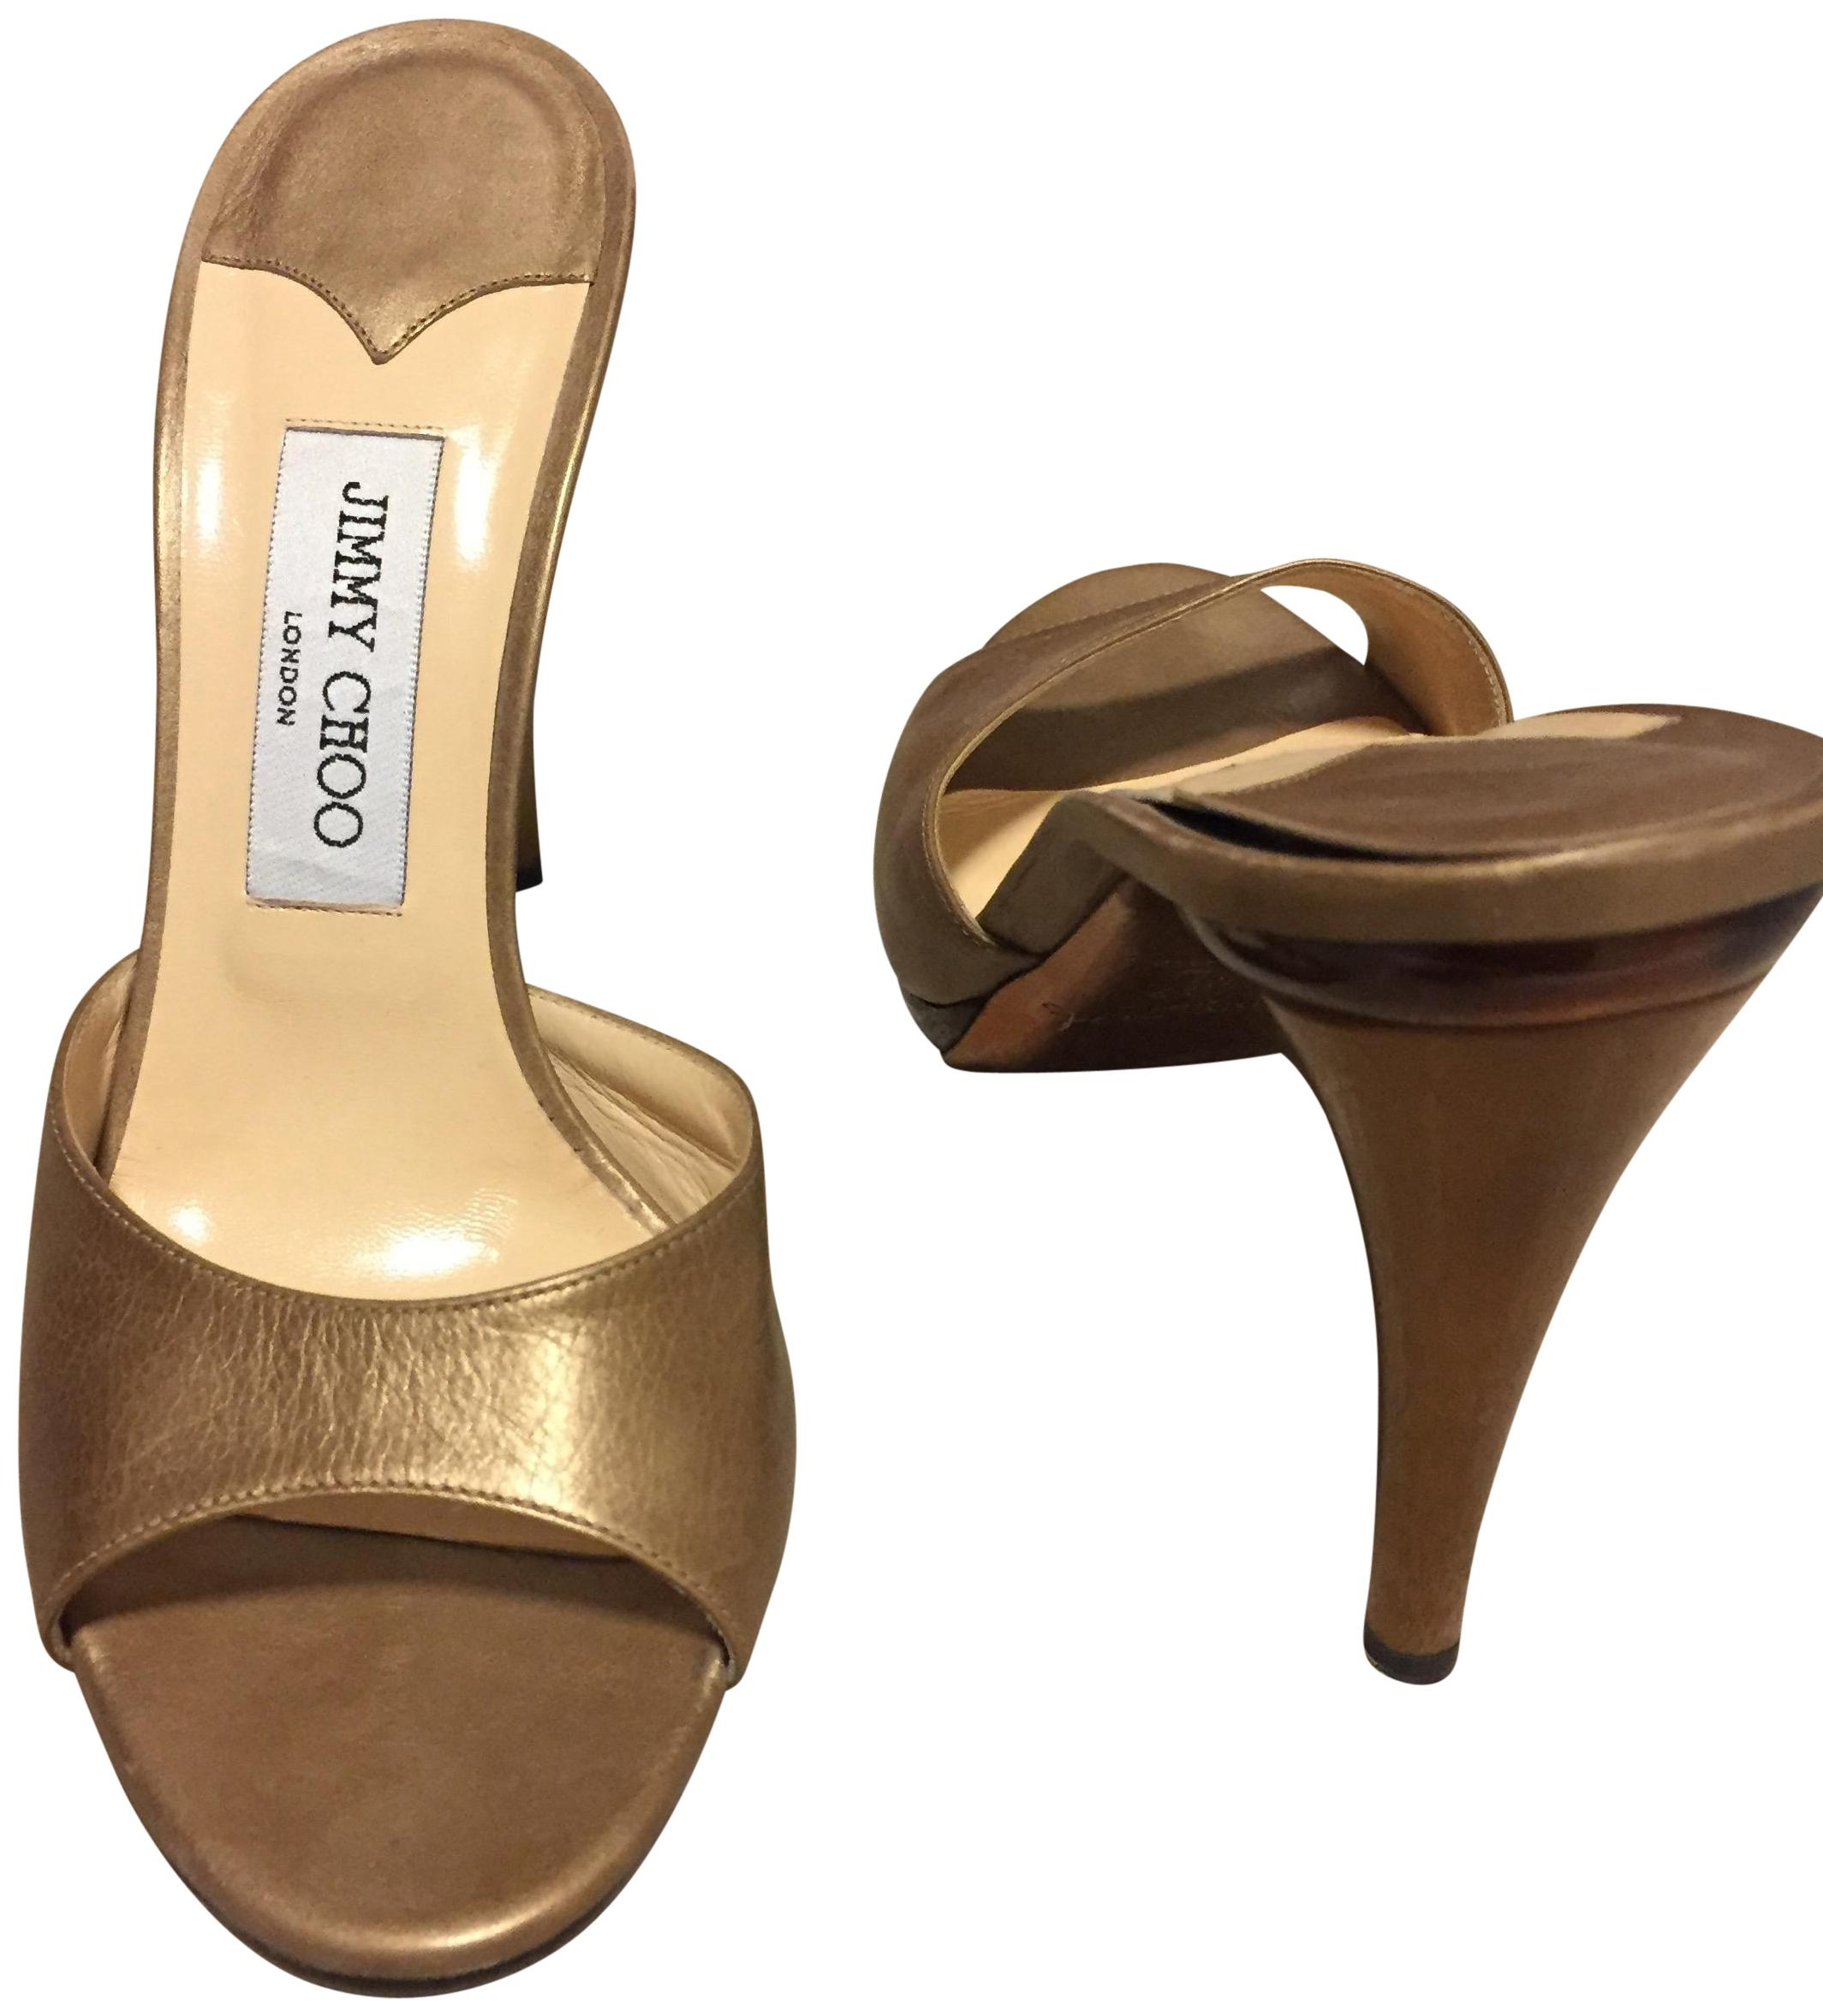 Sale New Discount 100% Authentic Jimmy choo Leather Mules & Clogs 100% Guaranteed Cheap Price JRUwF